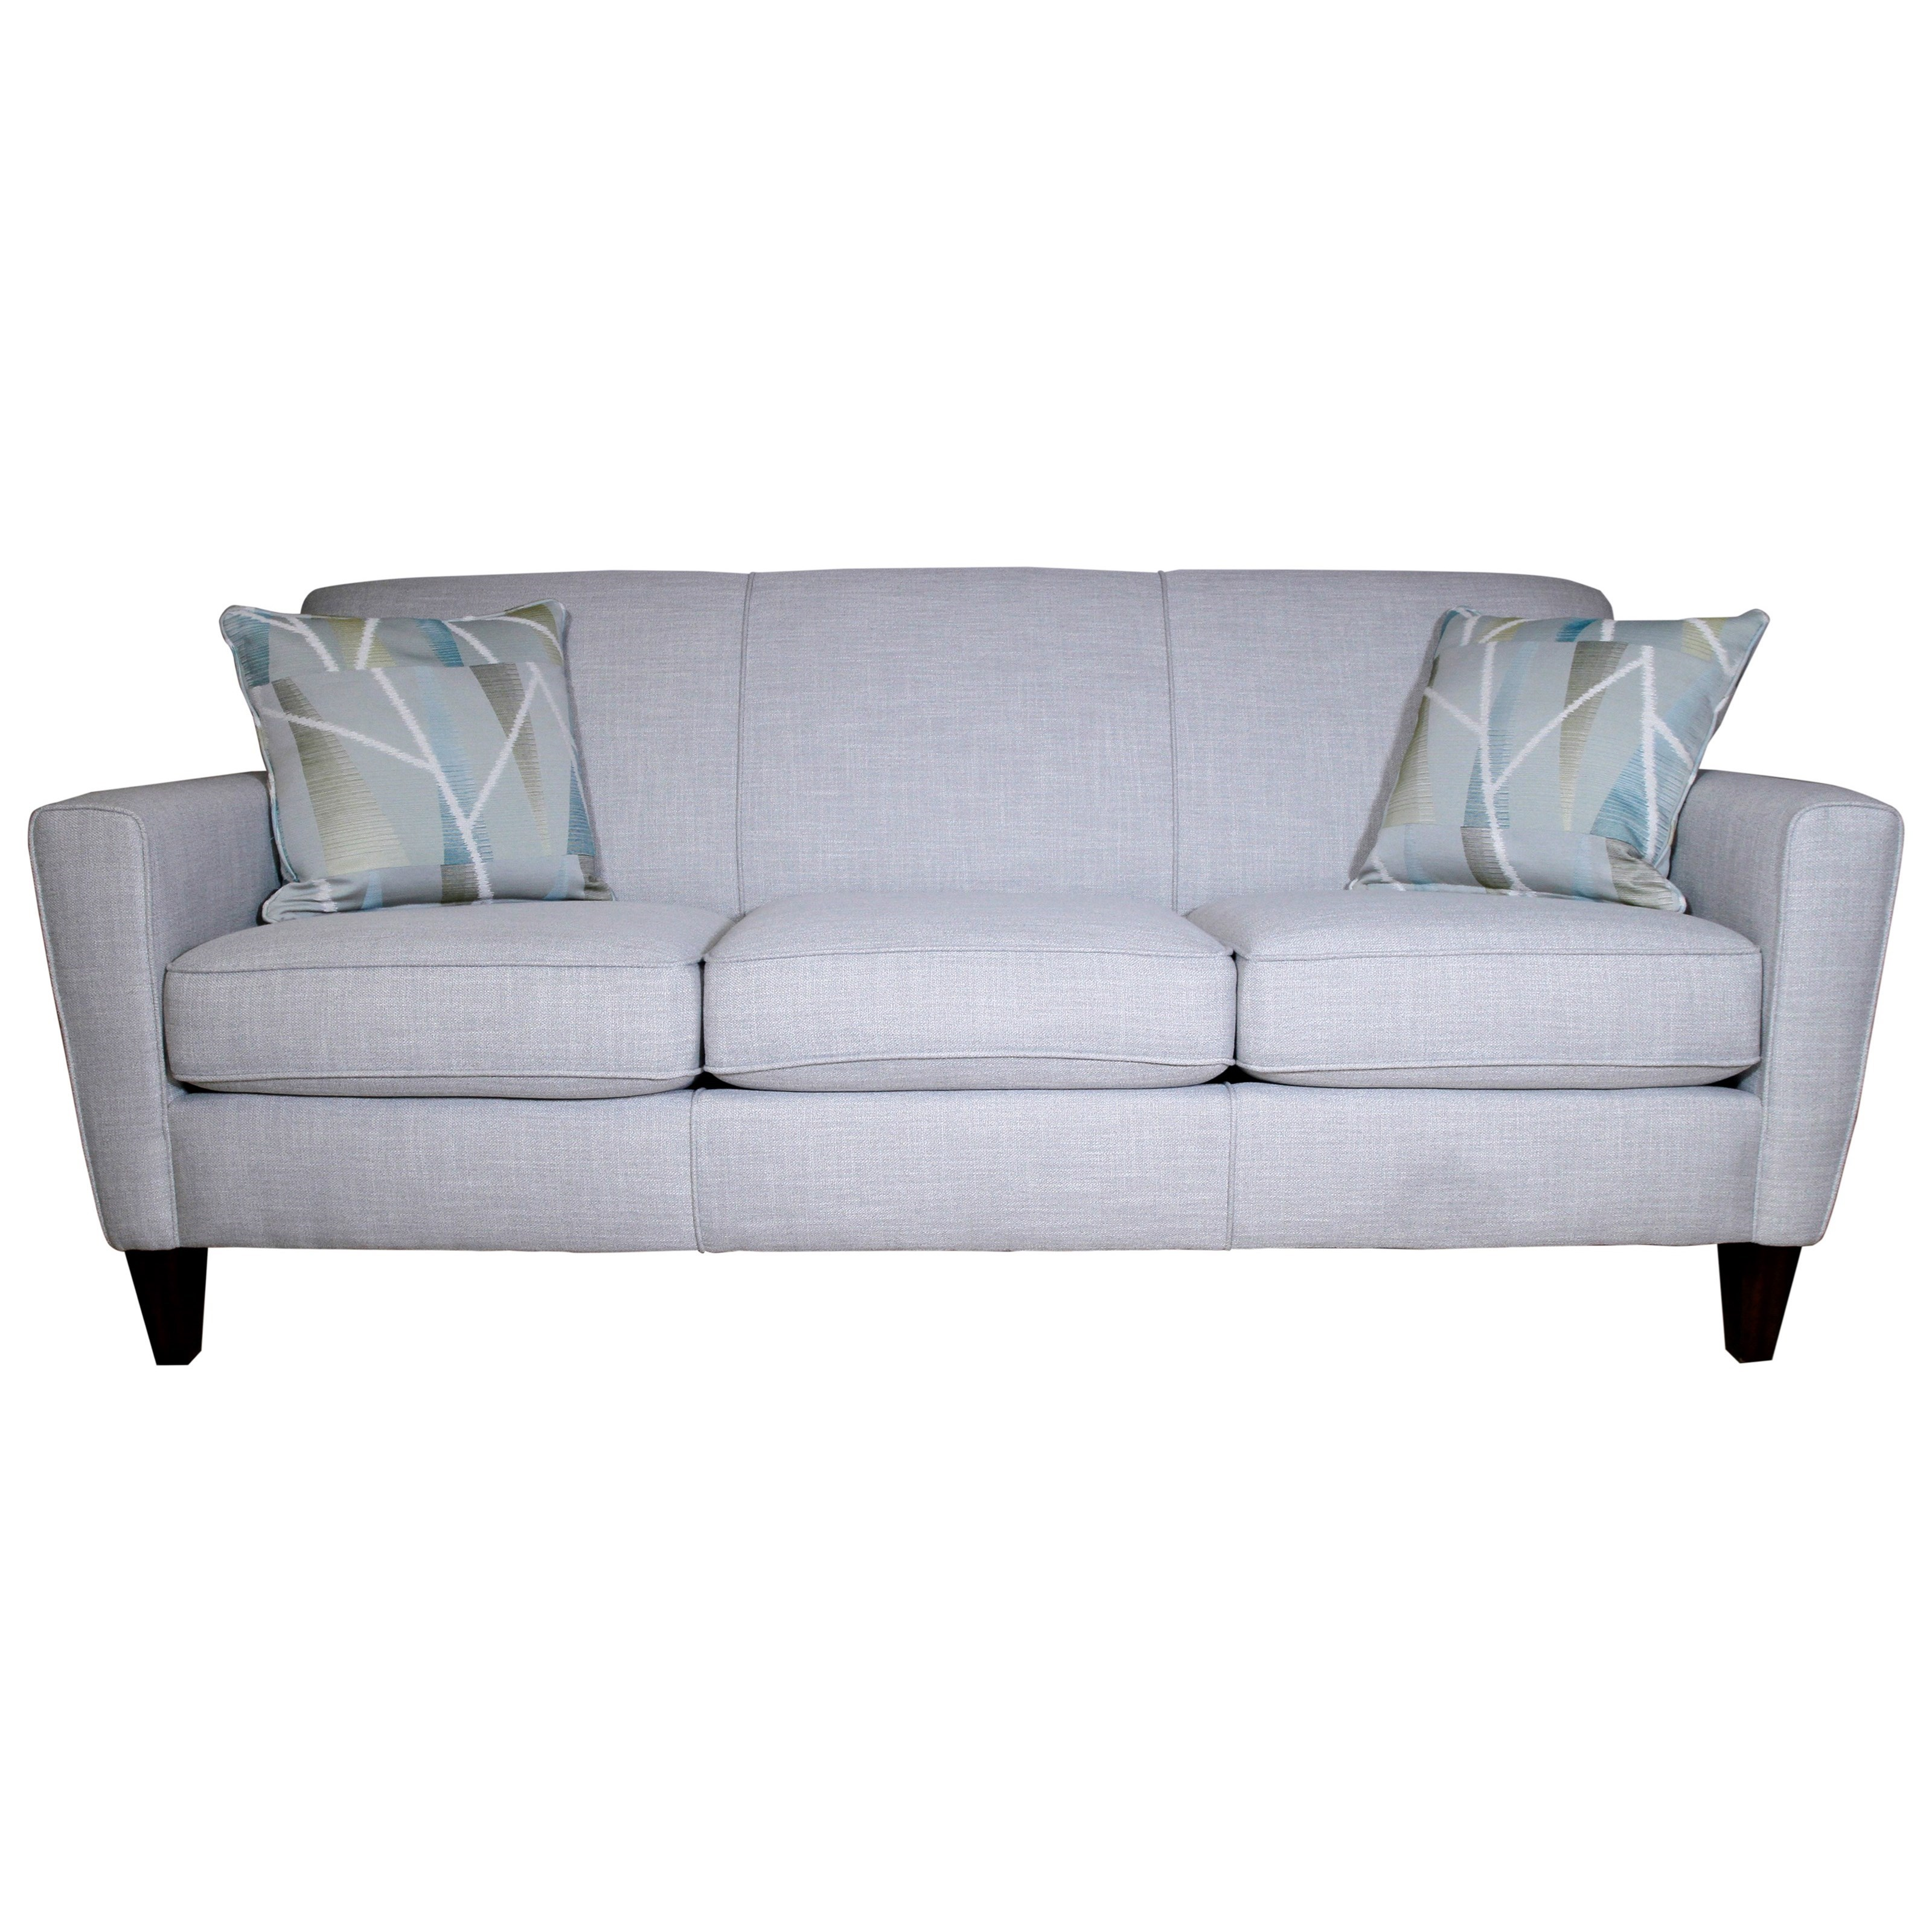 Digby Upholstered Sofa by Flexsteel at Steger's Furniture